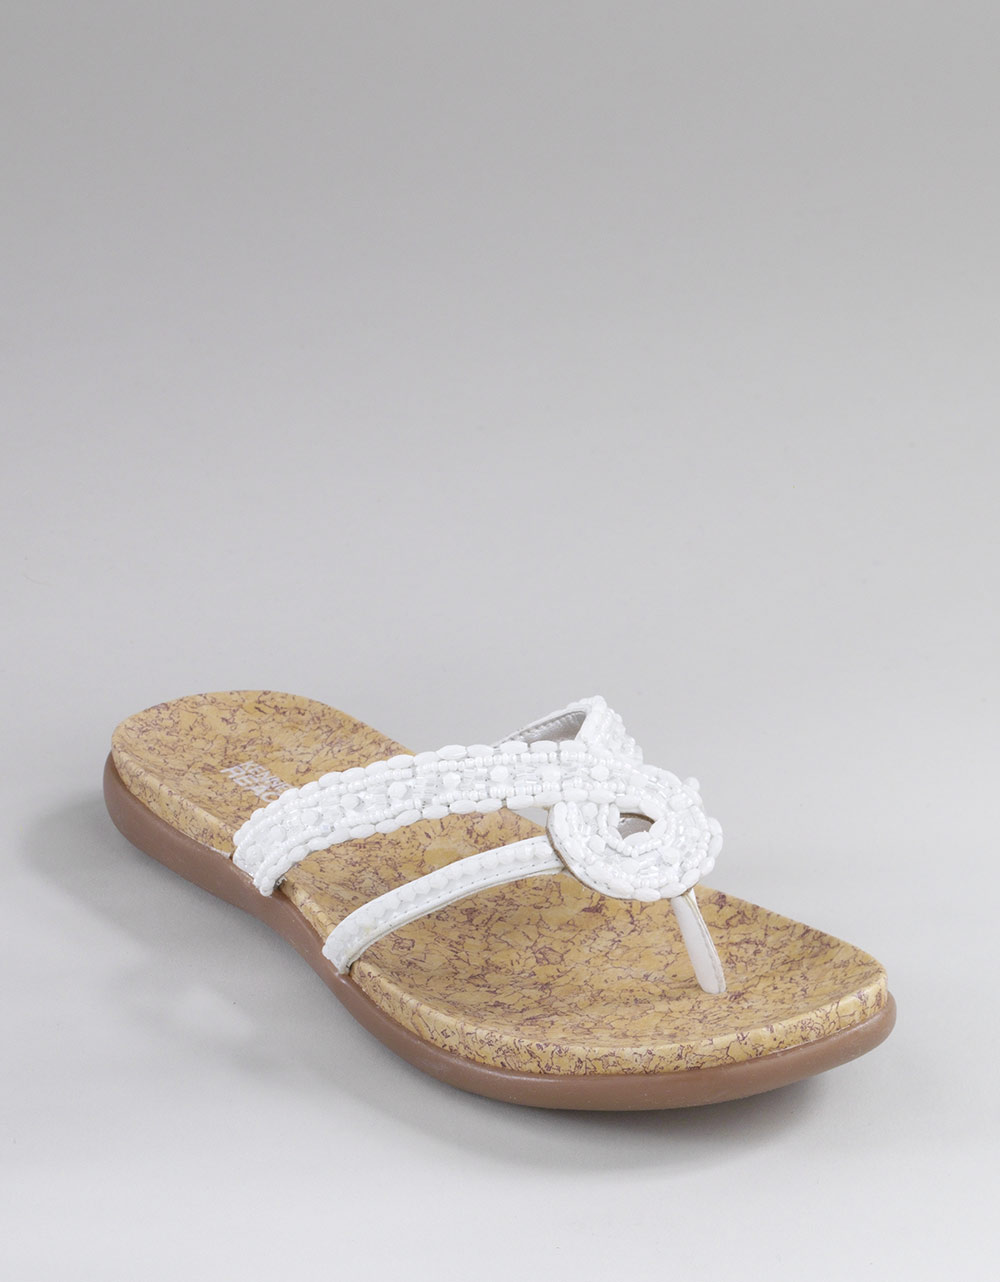 b5286fd65f64fb Lyst - Kenneth Cole Reaction Glam Life Beaded Sandals in White